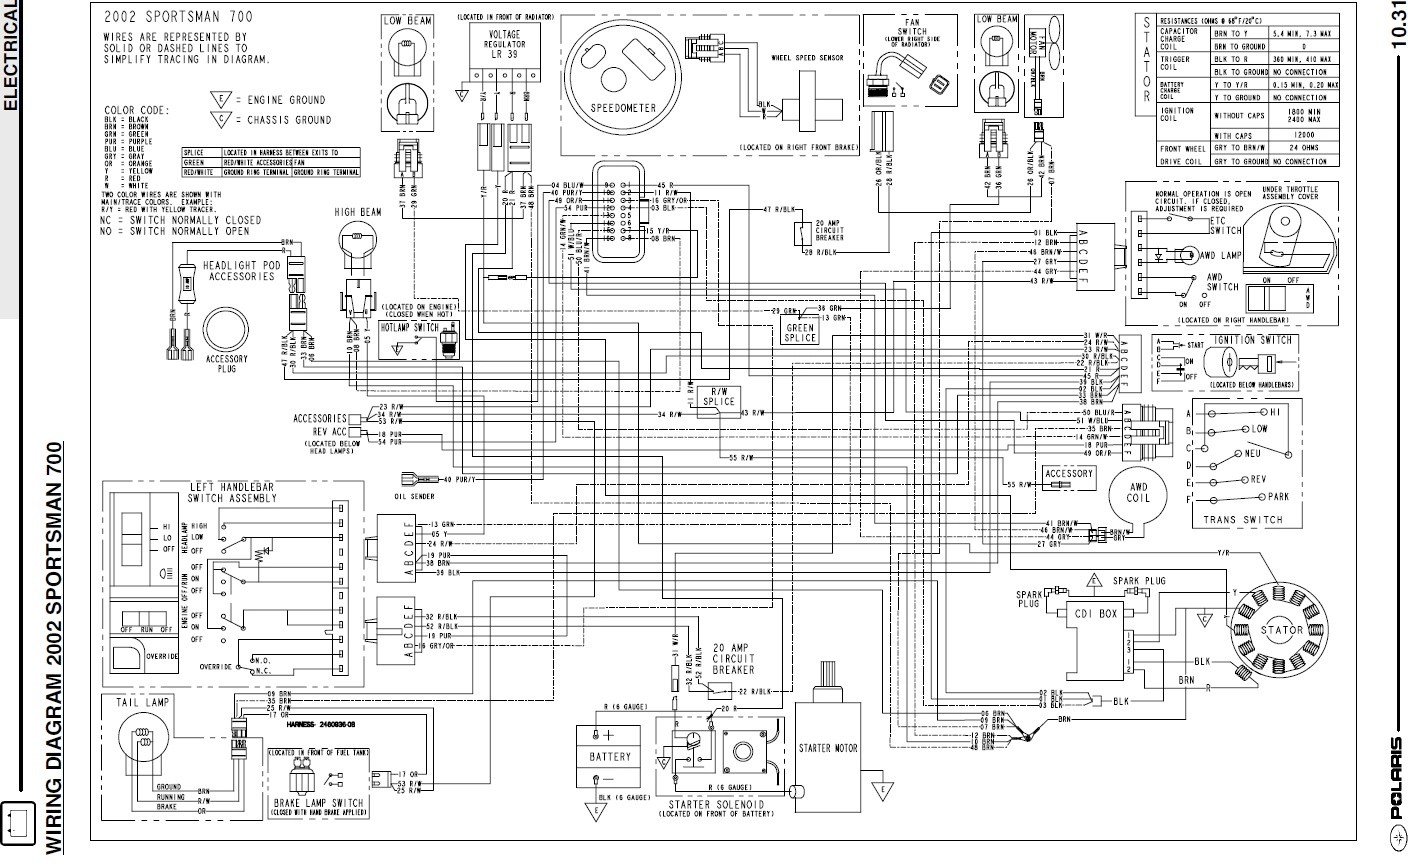 2010 Chevy Malibu Wiring Diagram from i1.wp.com